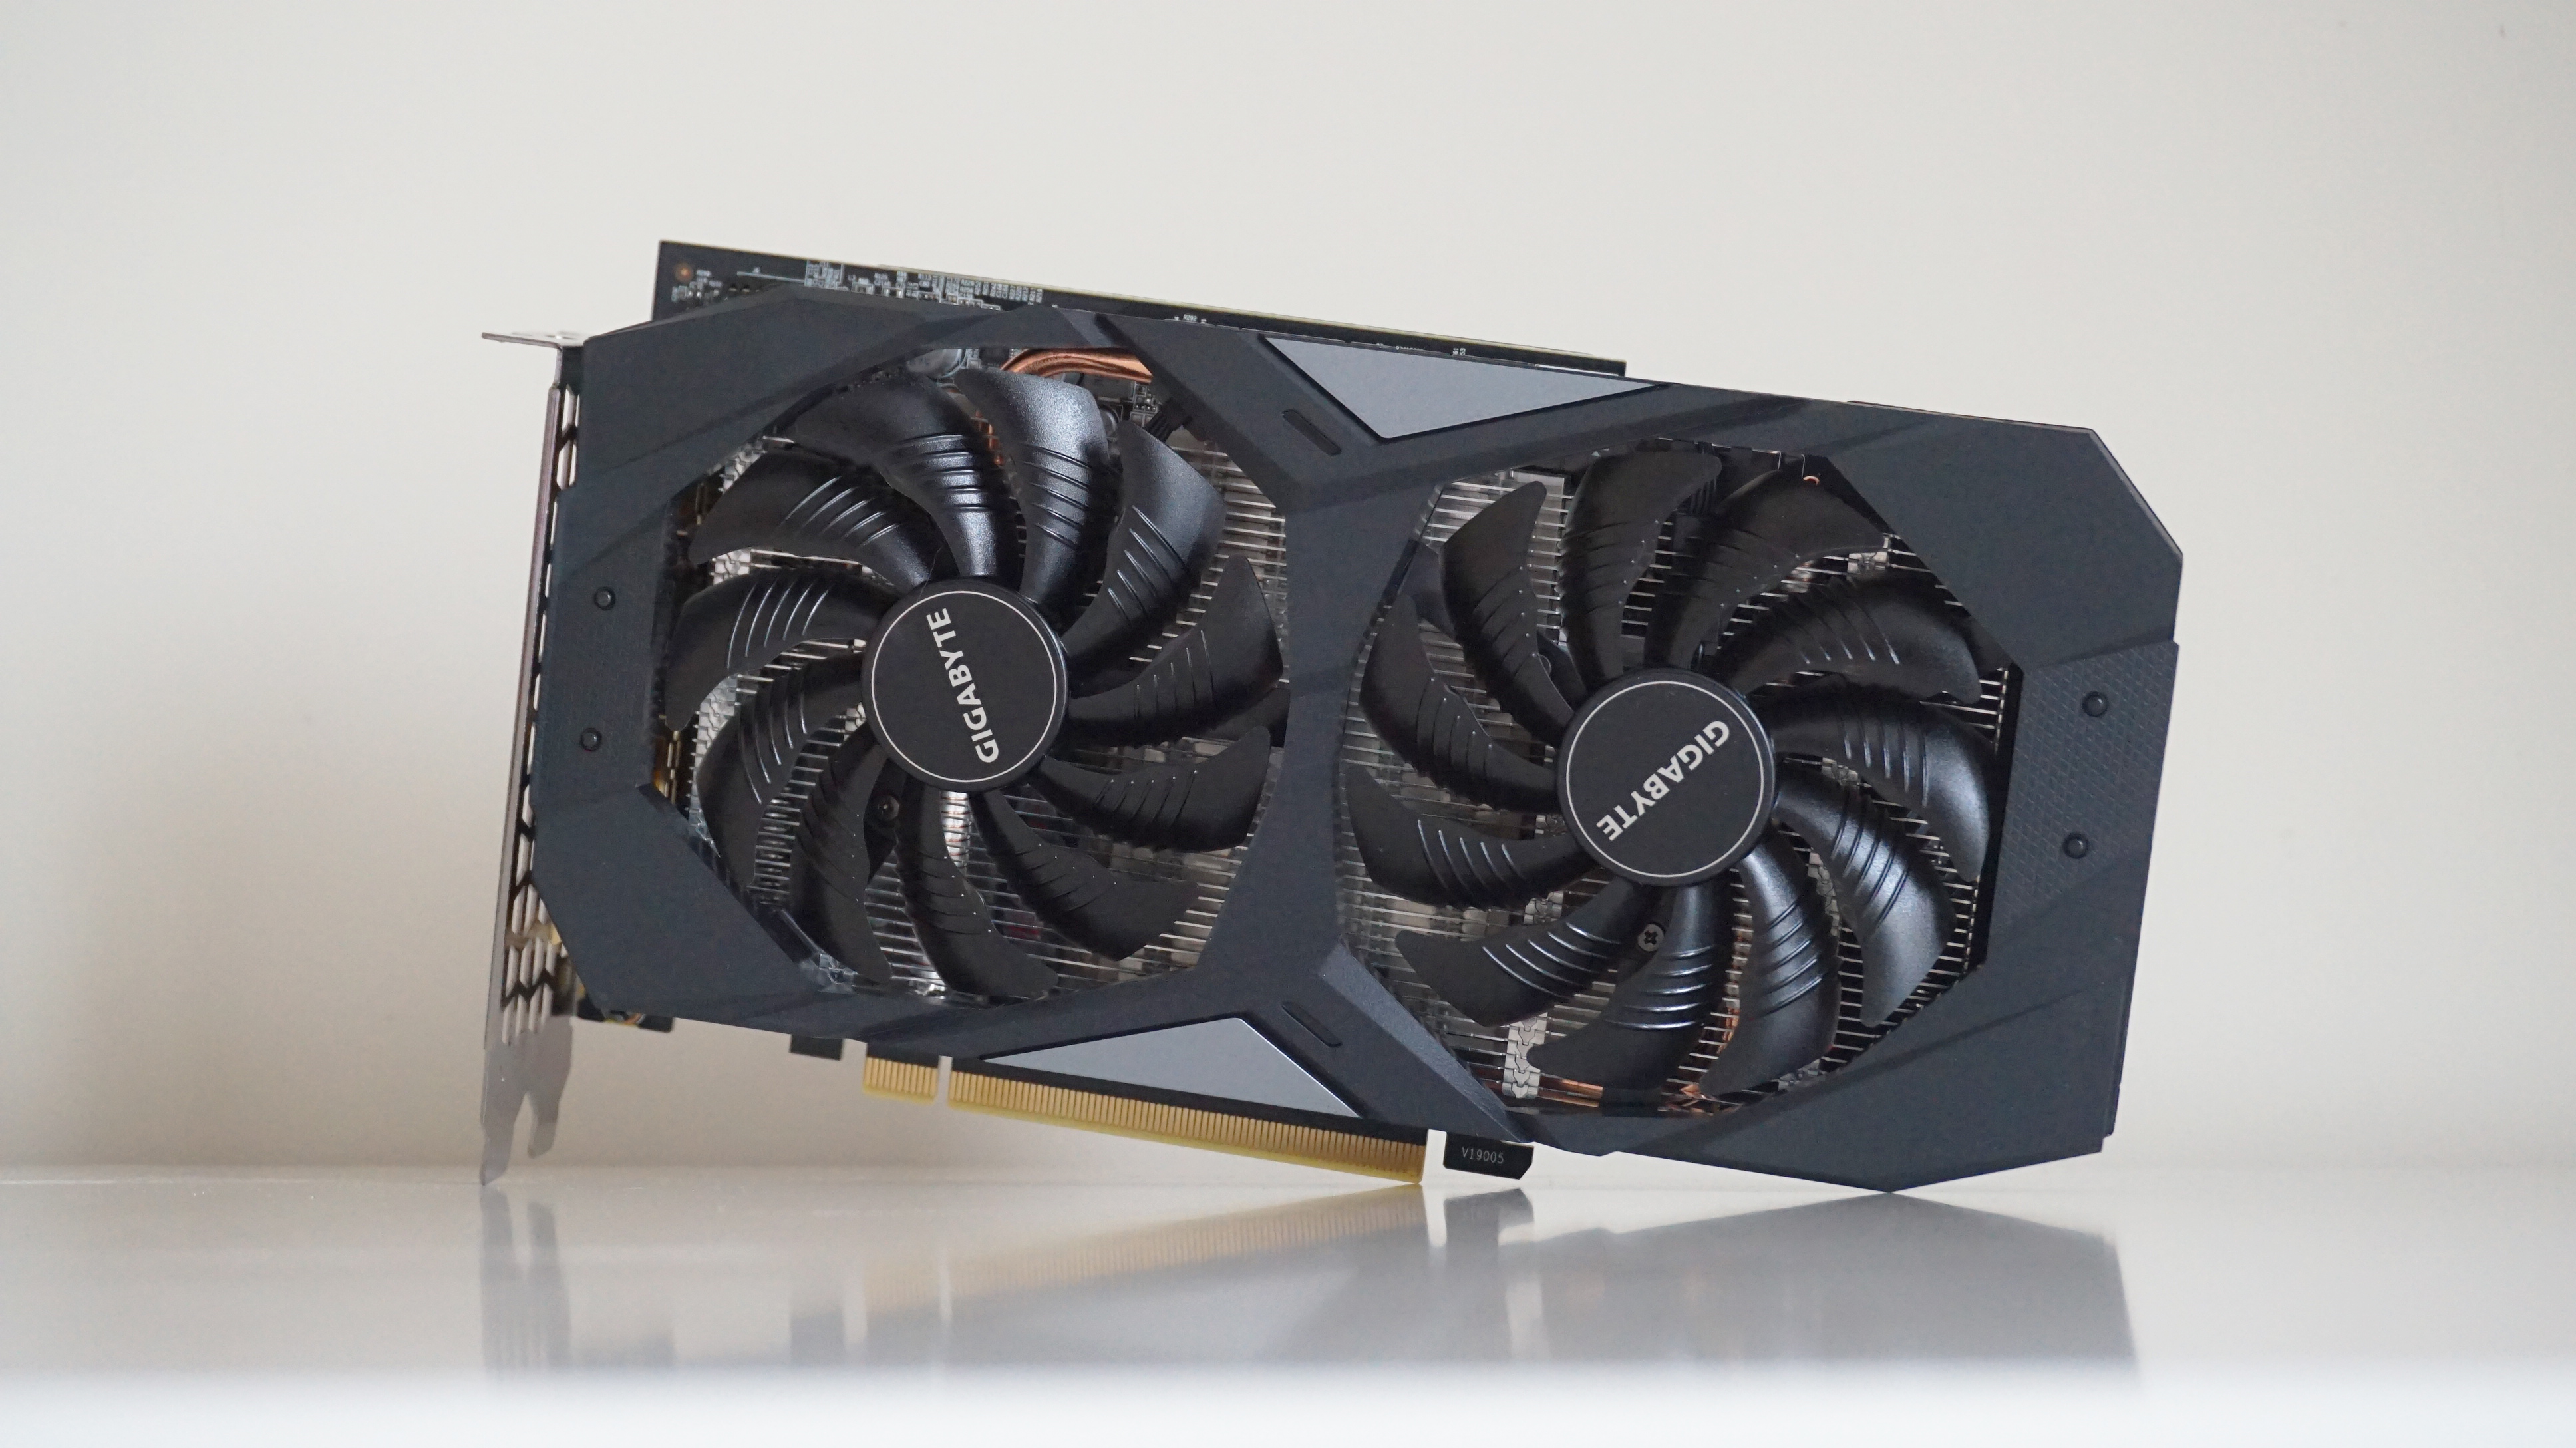 Nvidia GeForce GTX 1660 review: Faster than a GTX 1060 for the same